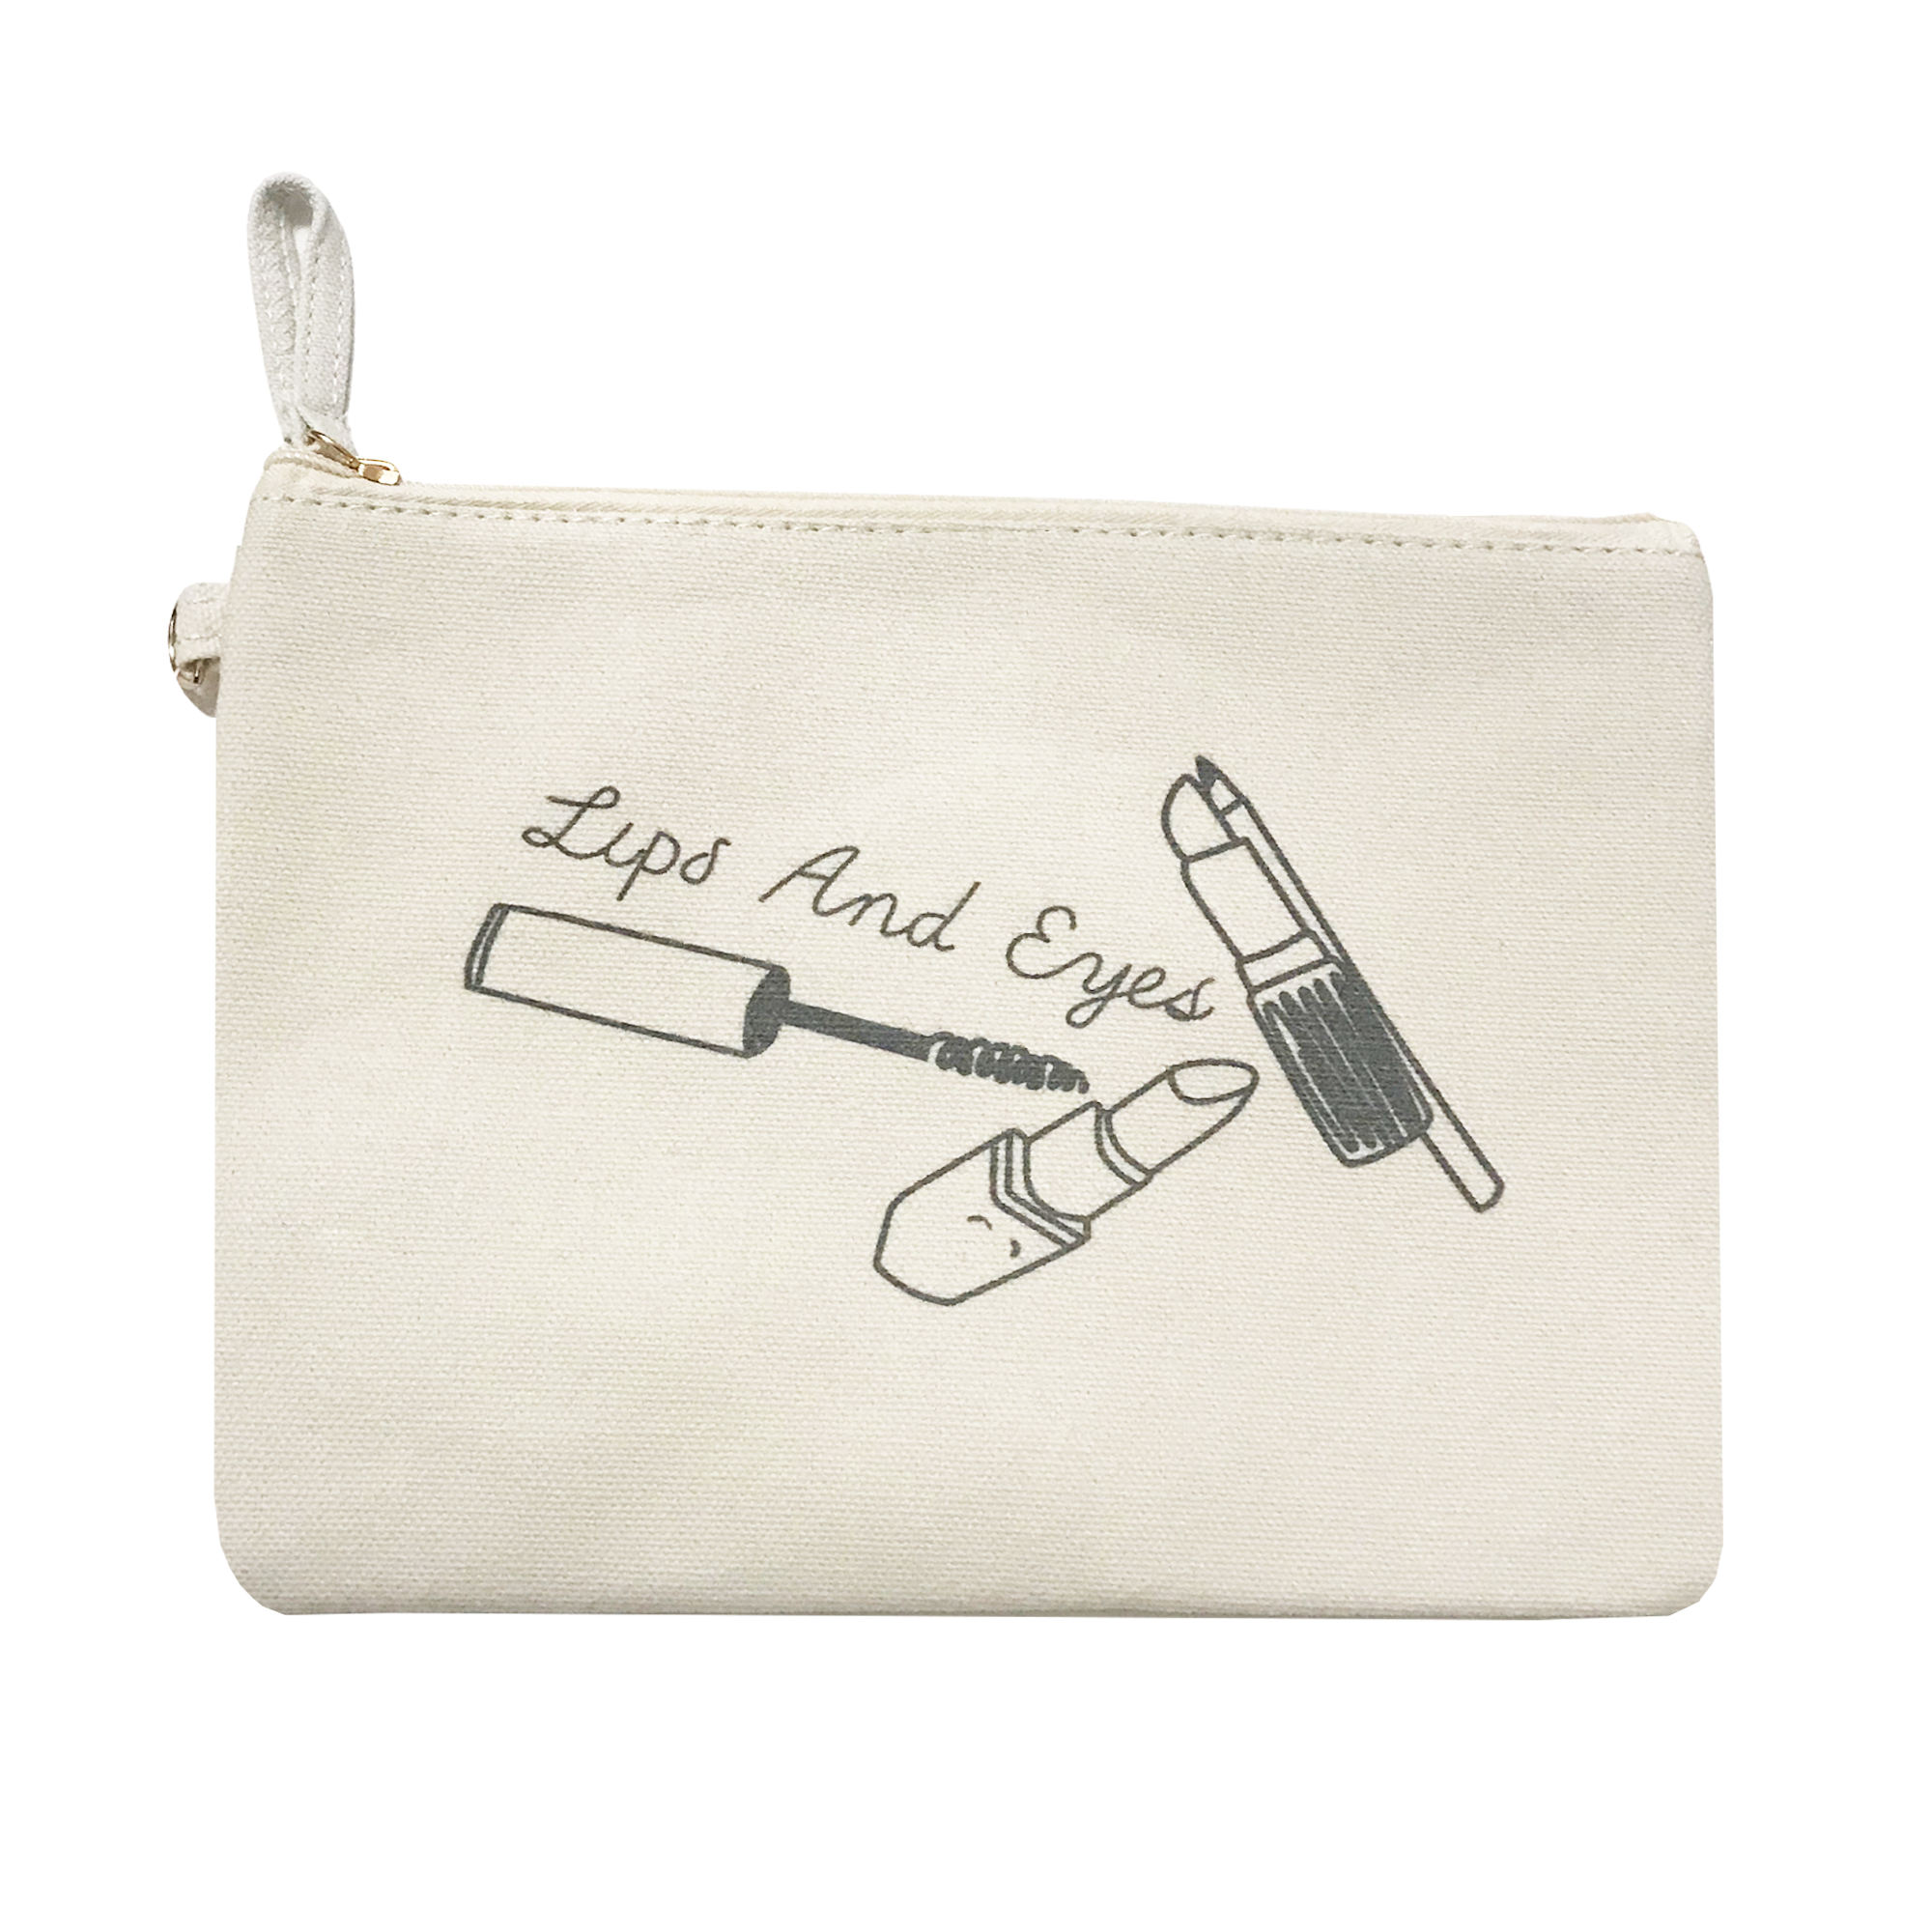 LIPS AND EYES POUCH